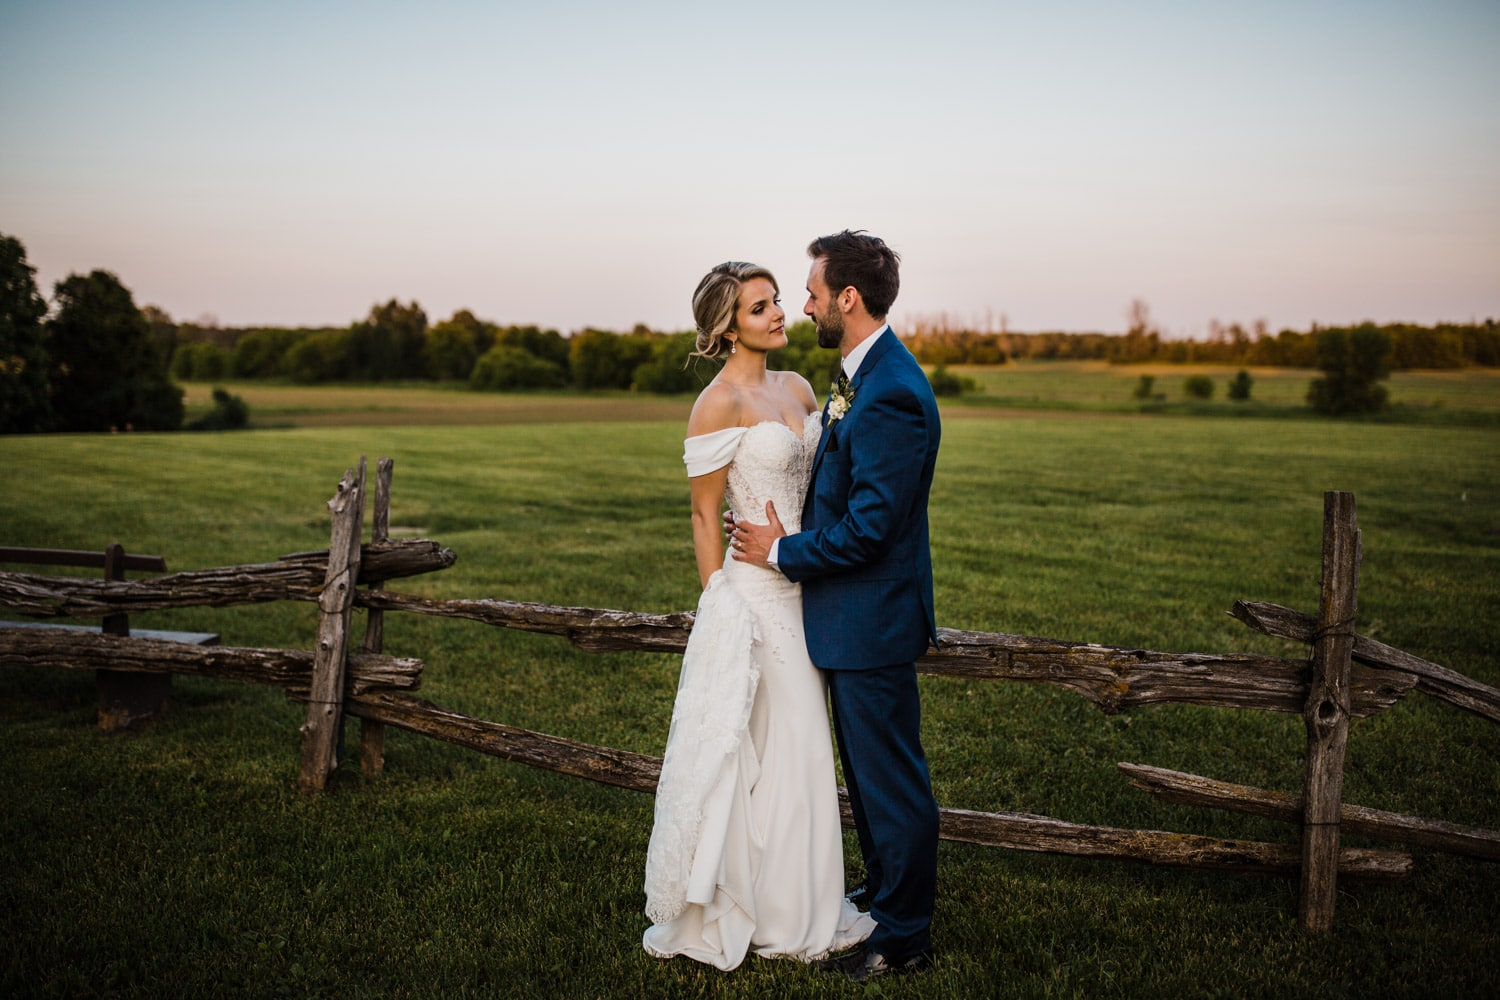 bride and groom stand by wooden fence - strathmere wedding